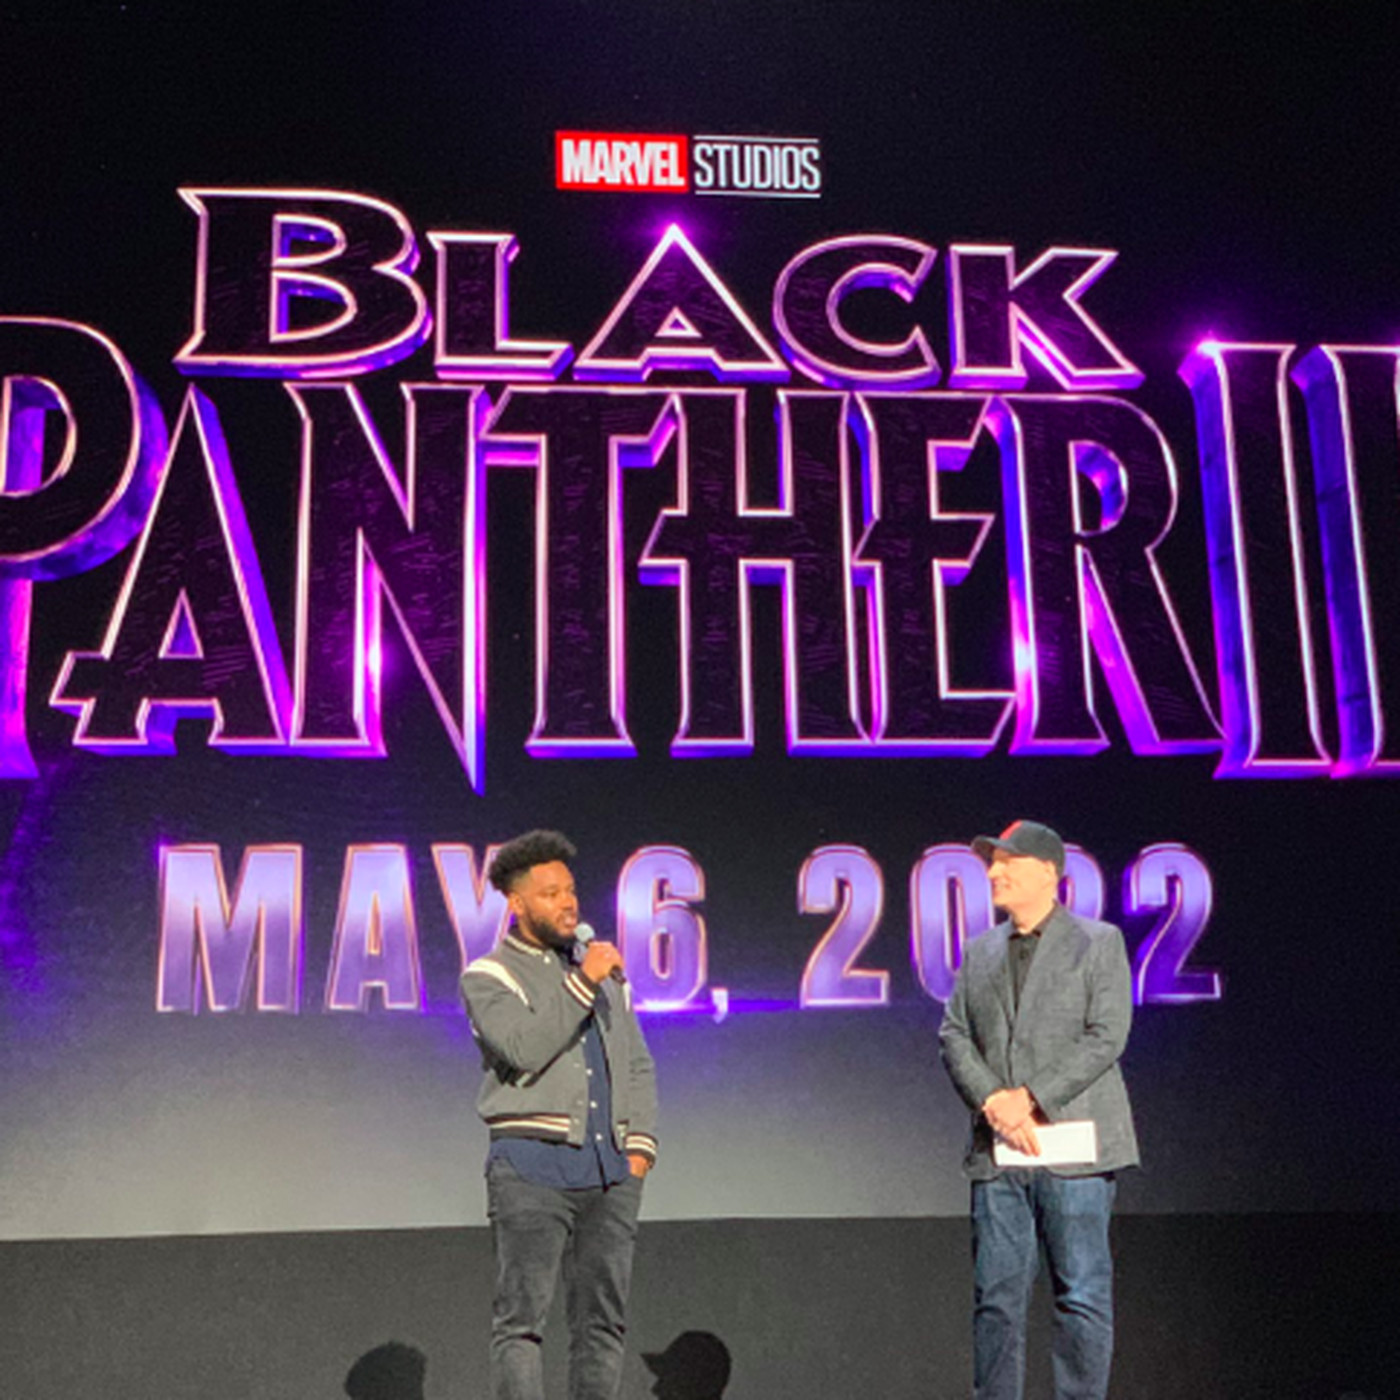 Black Panther 2 Marvel Announces A 2022 Release Date For The Sequel Vox